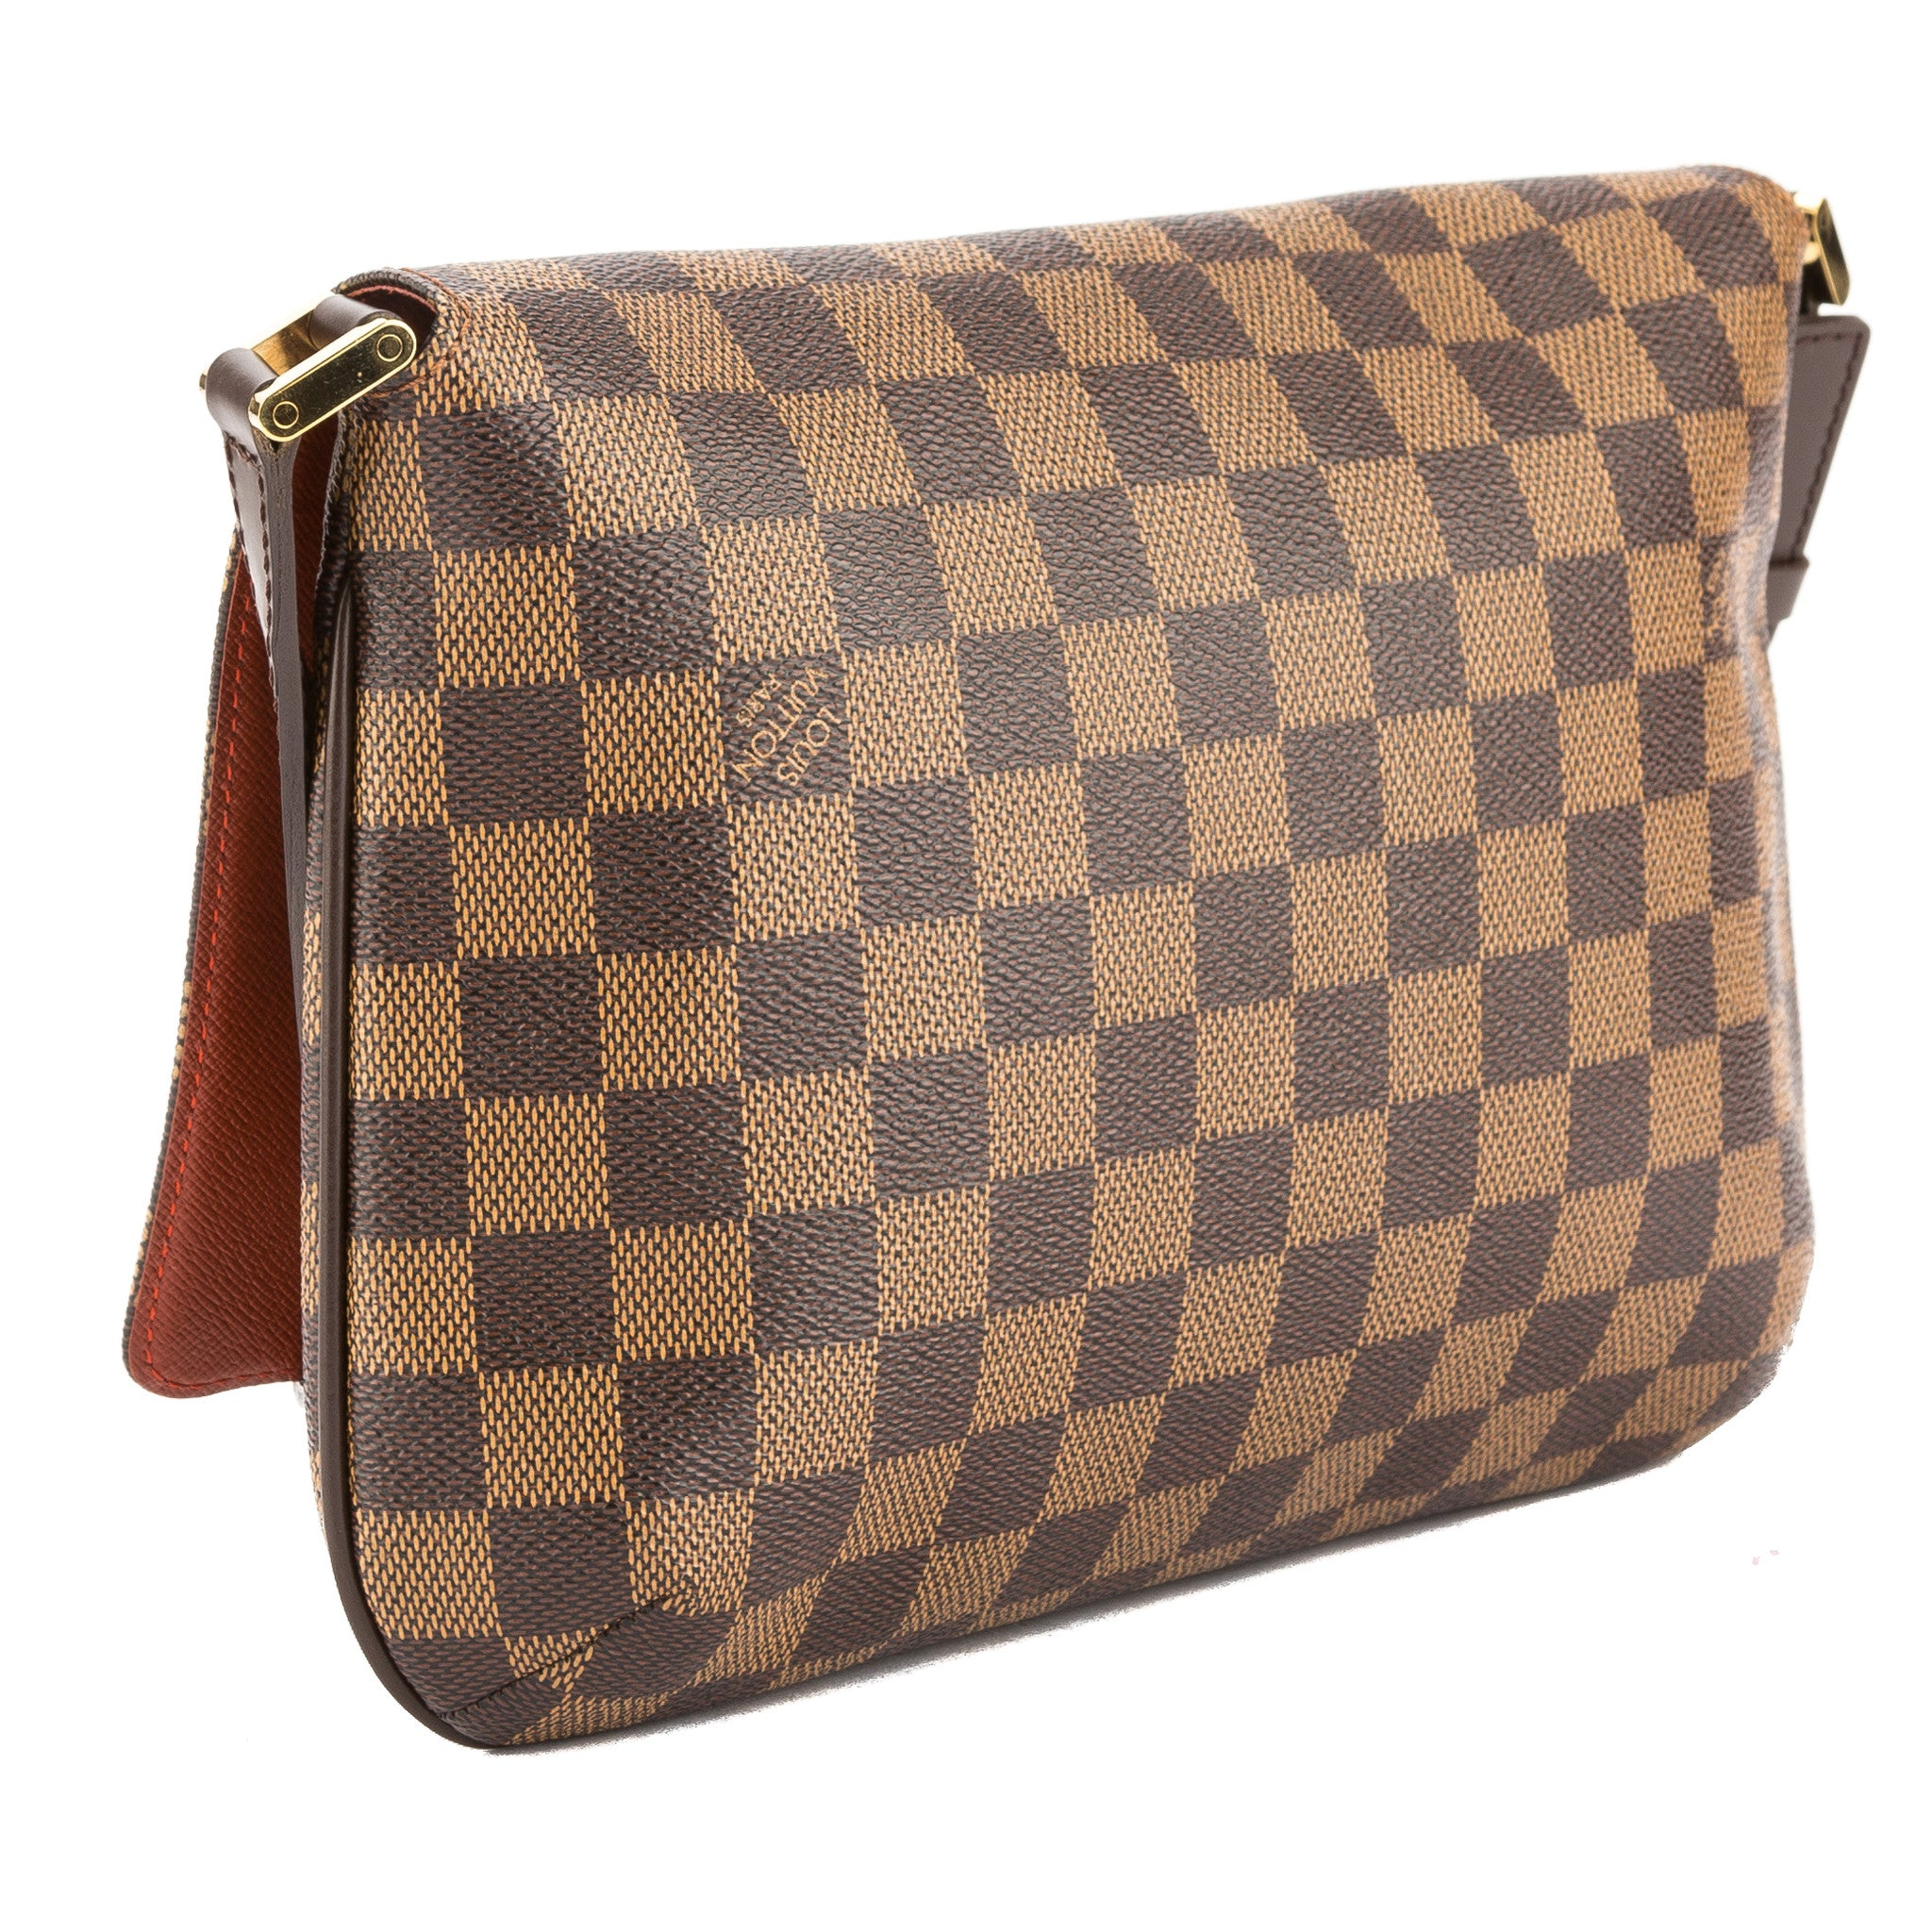 c873a37311f8 Louis Vuitton Damier Ebene Canvas Musette Tango Short Strap Bag (Pre O -  3494006